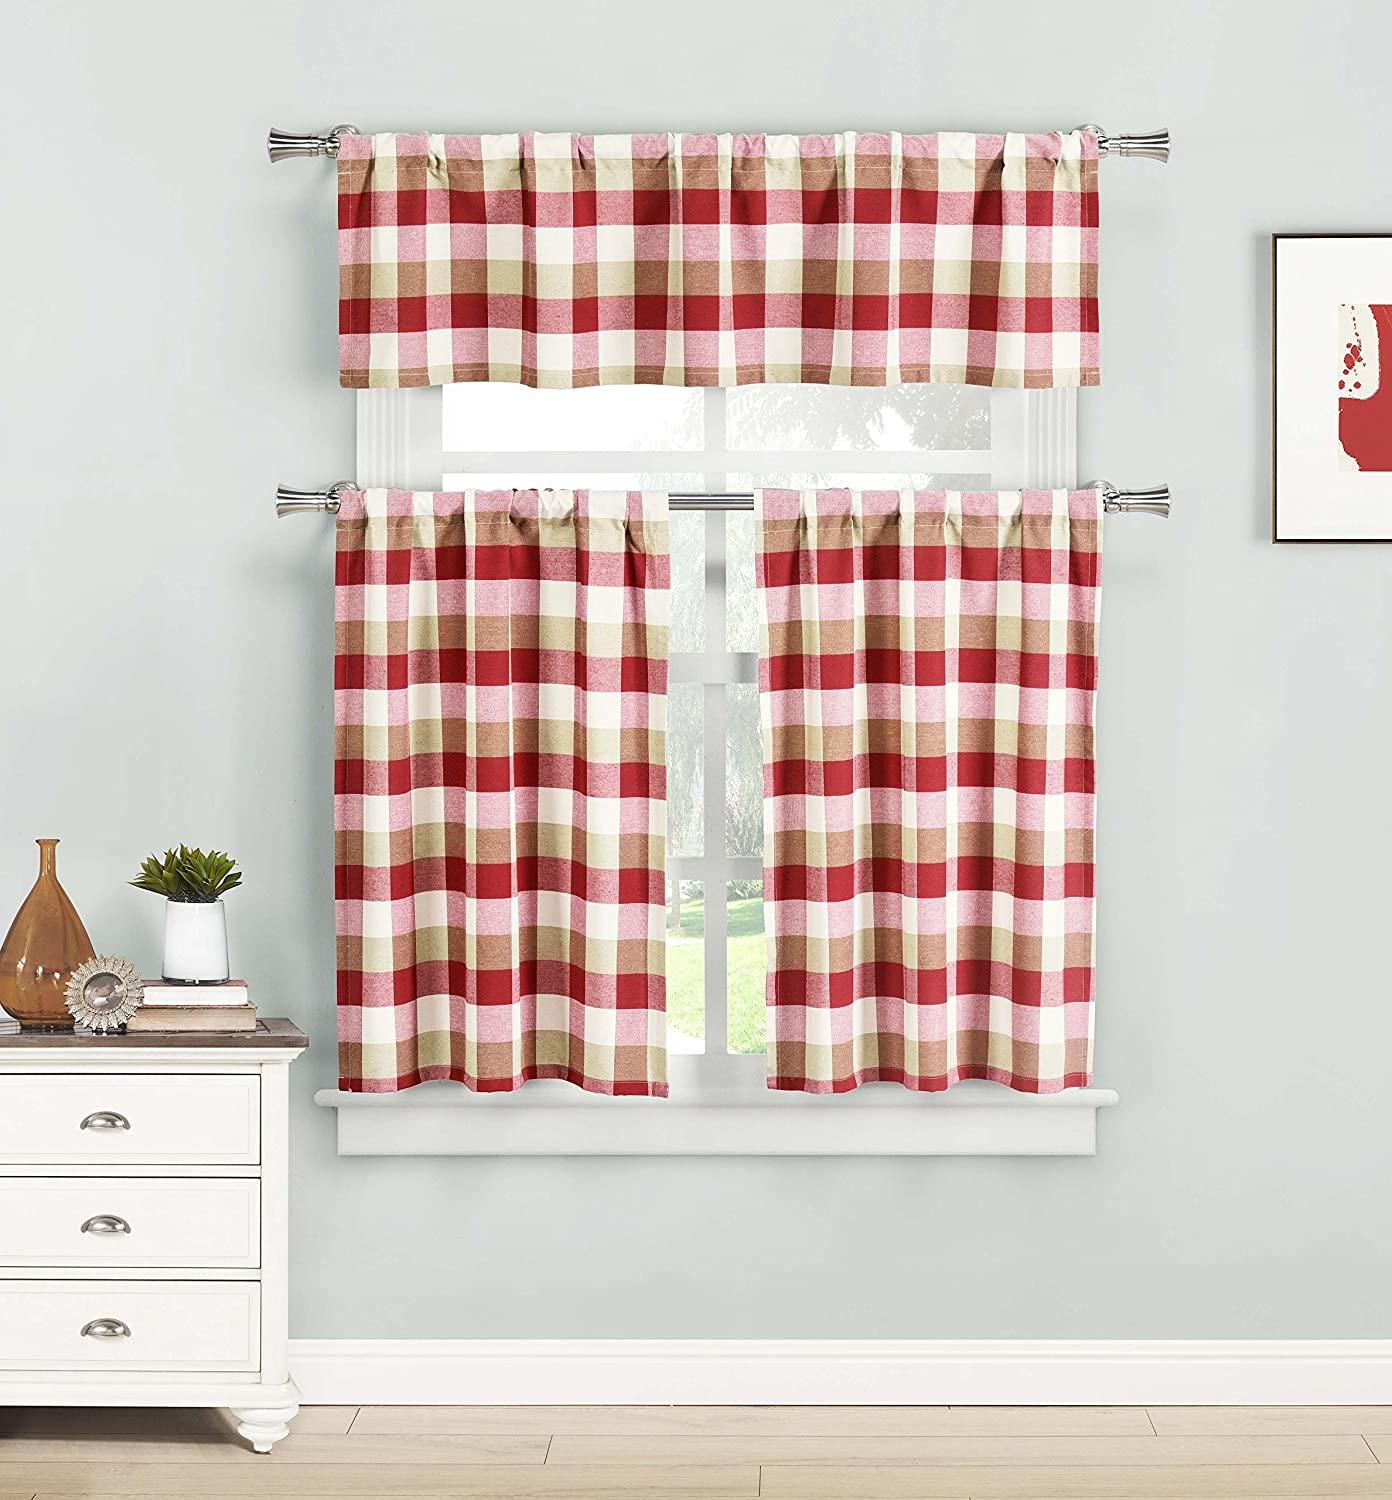 Home Maison- Kingsville Country Plaid Gingham Checkered Kitchen Tier & Valance Set | Small Window Curtain for Cafe, Bath, Laundry, Bedroom - (Red)